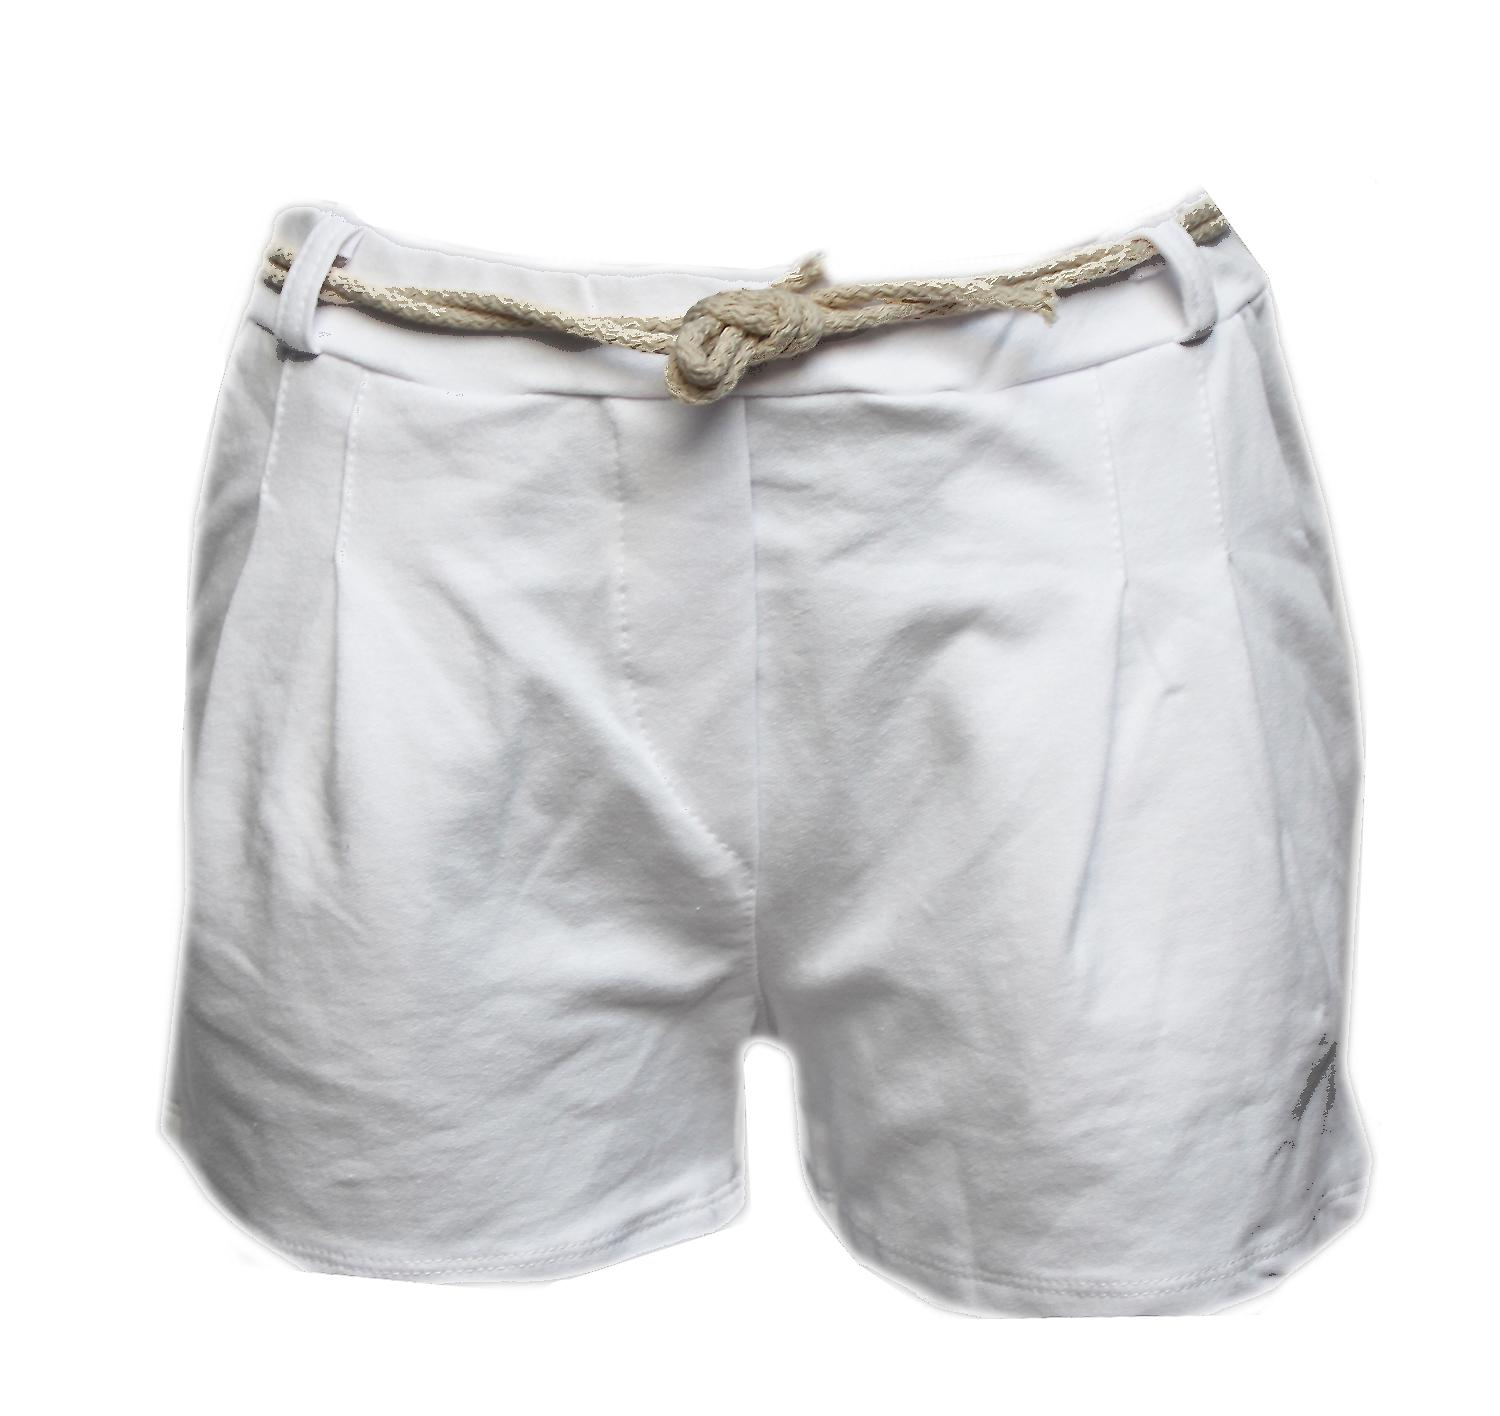 Waooh - Summer Shorts sexy with rope belt